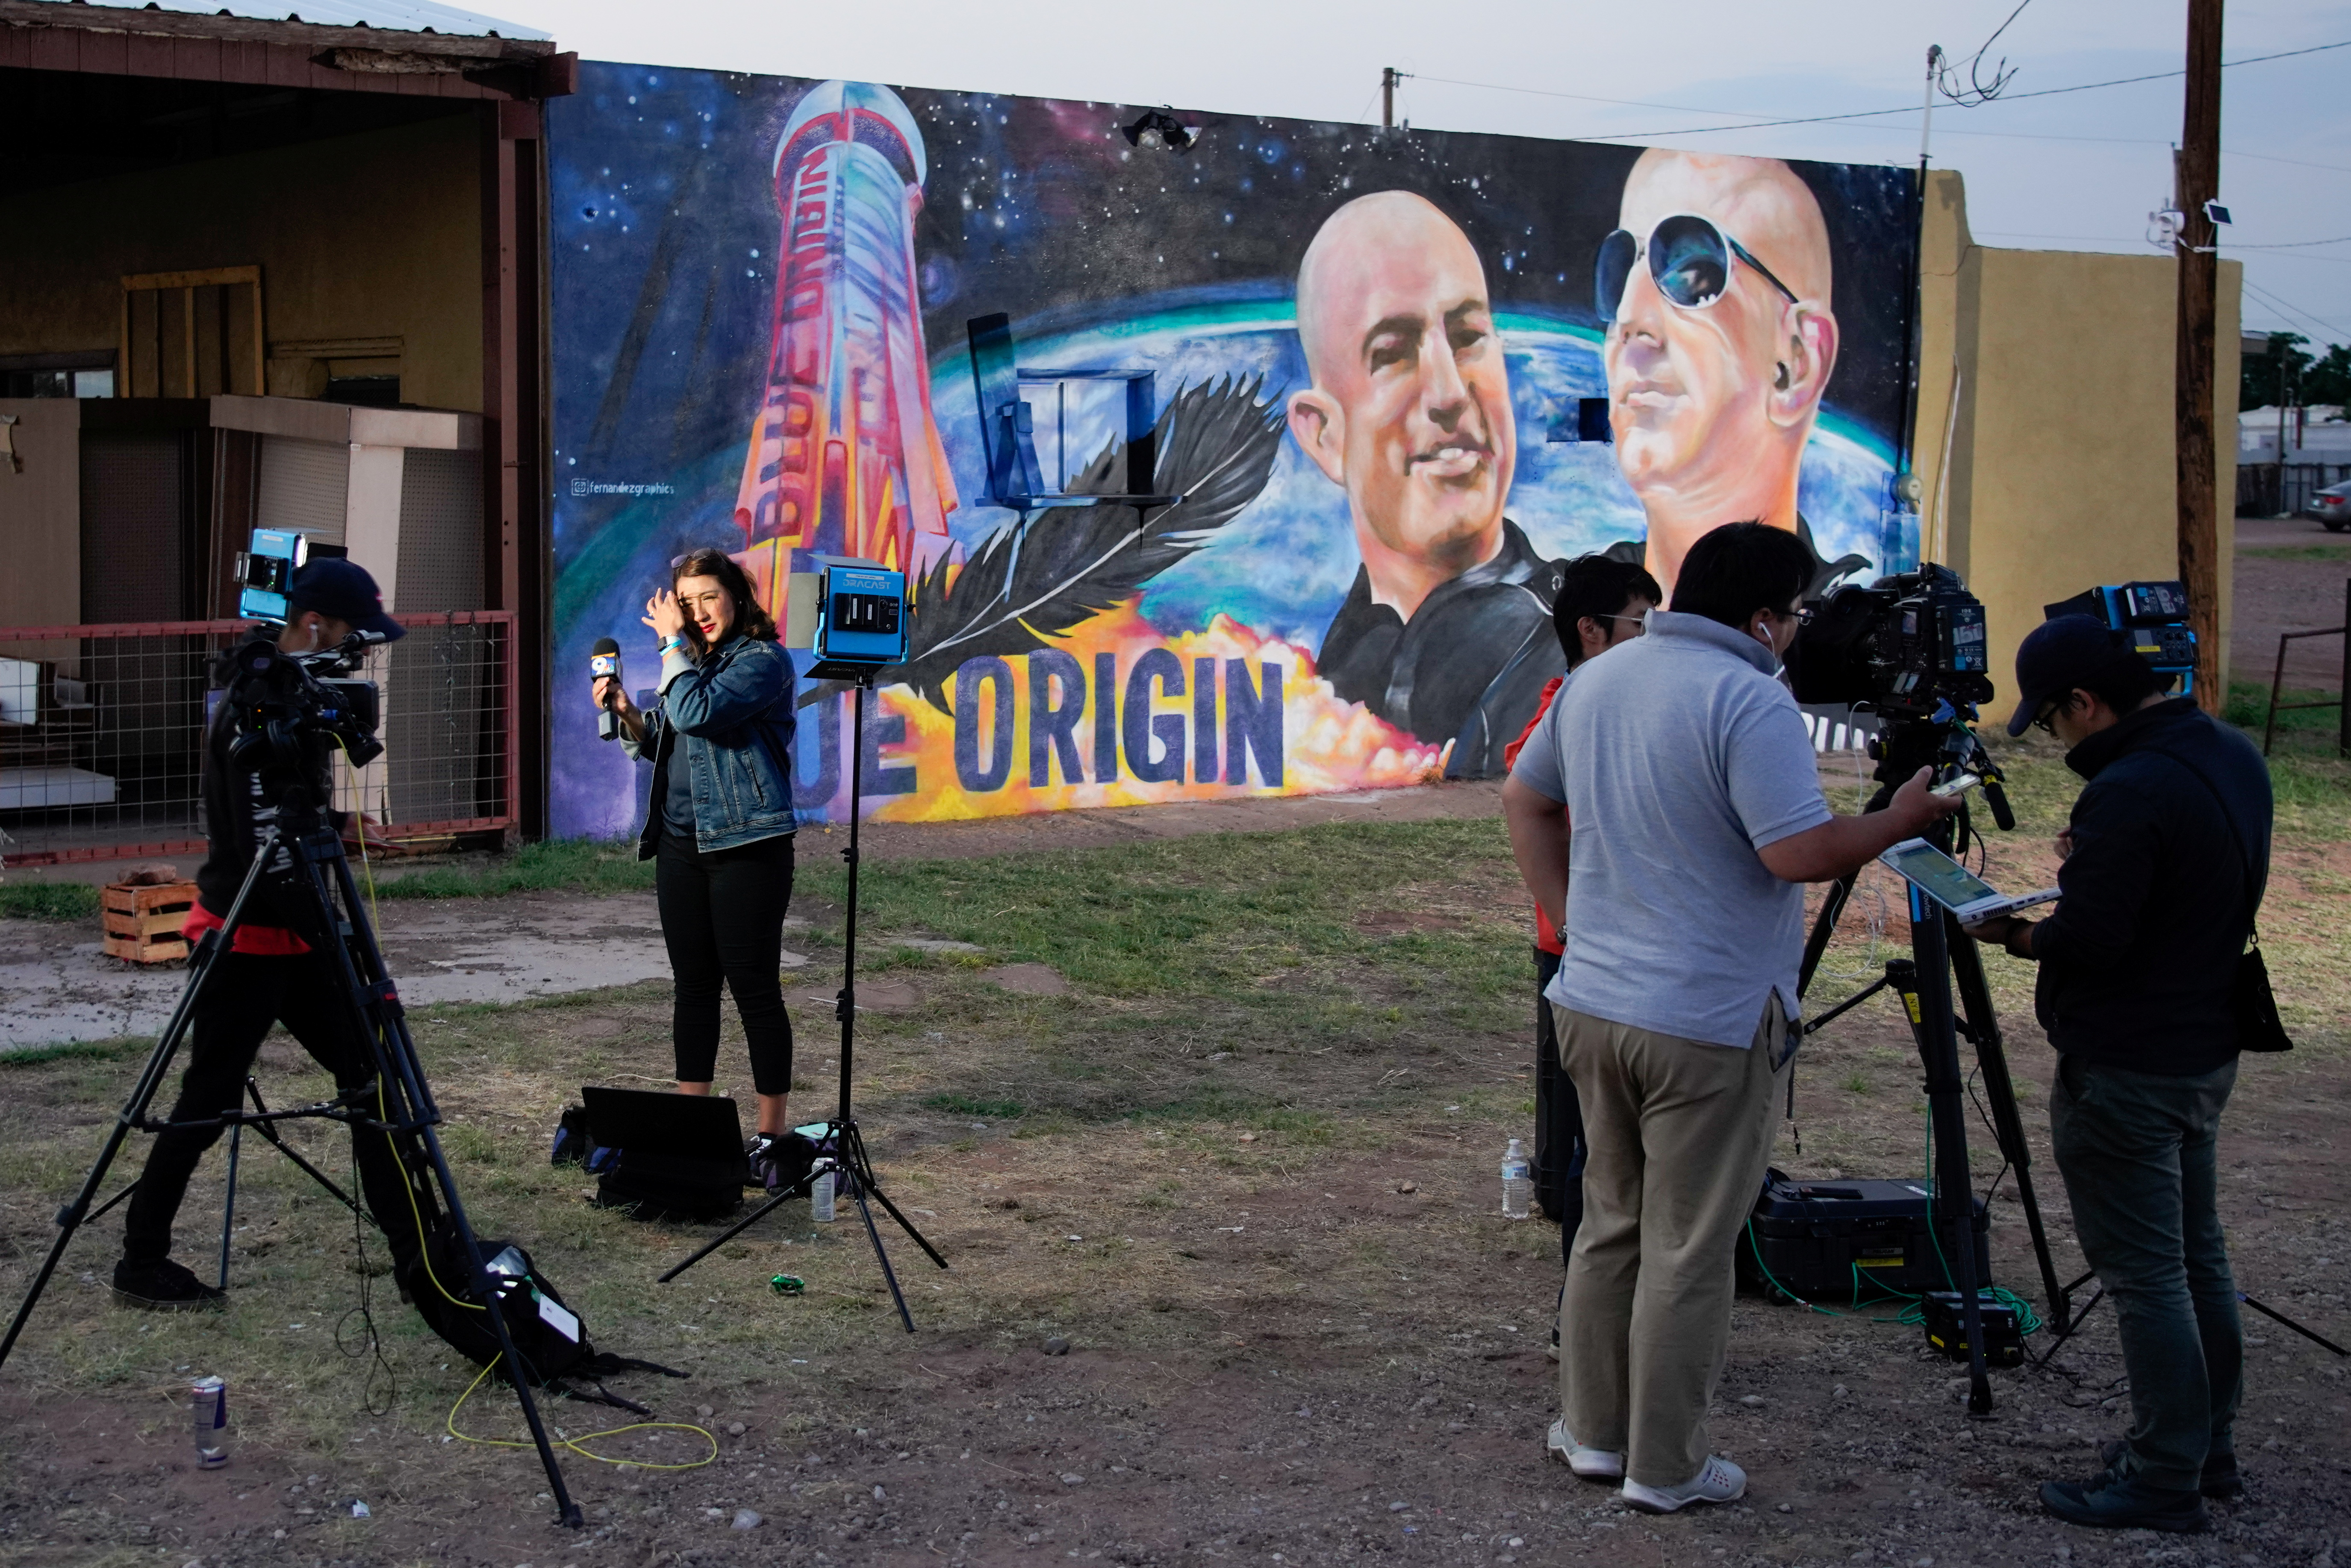 News Channel 9 Reporter Celina Quintana Ortiz prepares to go live in front of a Blue Origin Mural depicting Jeff and Mark Bezos, in Van Horn, Texas, U.S., July 20, 2021. REUTERS/Paul Ratje